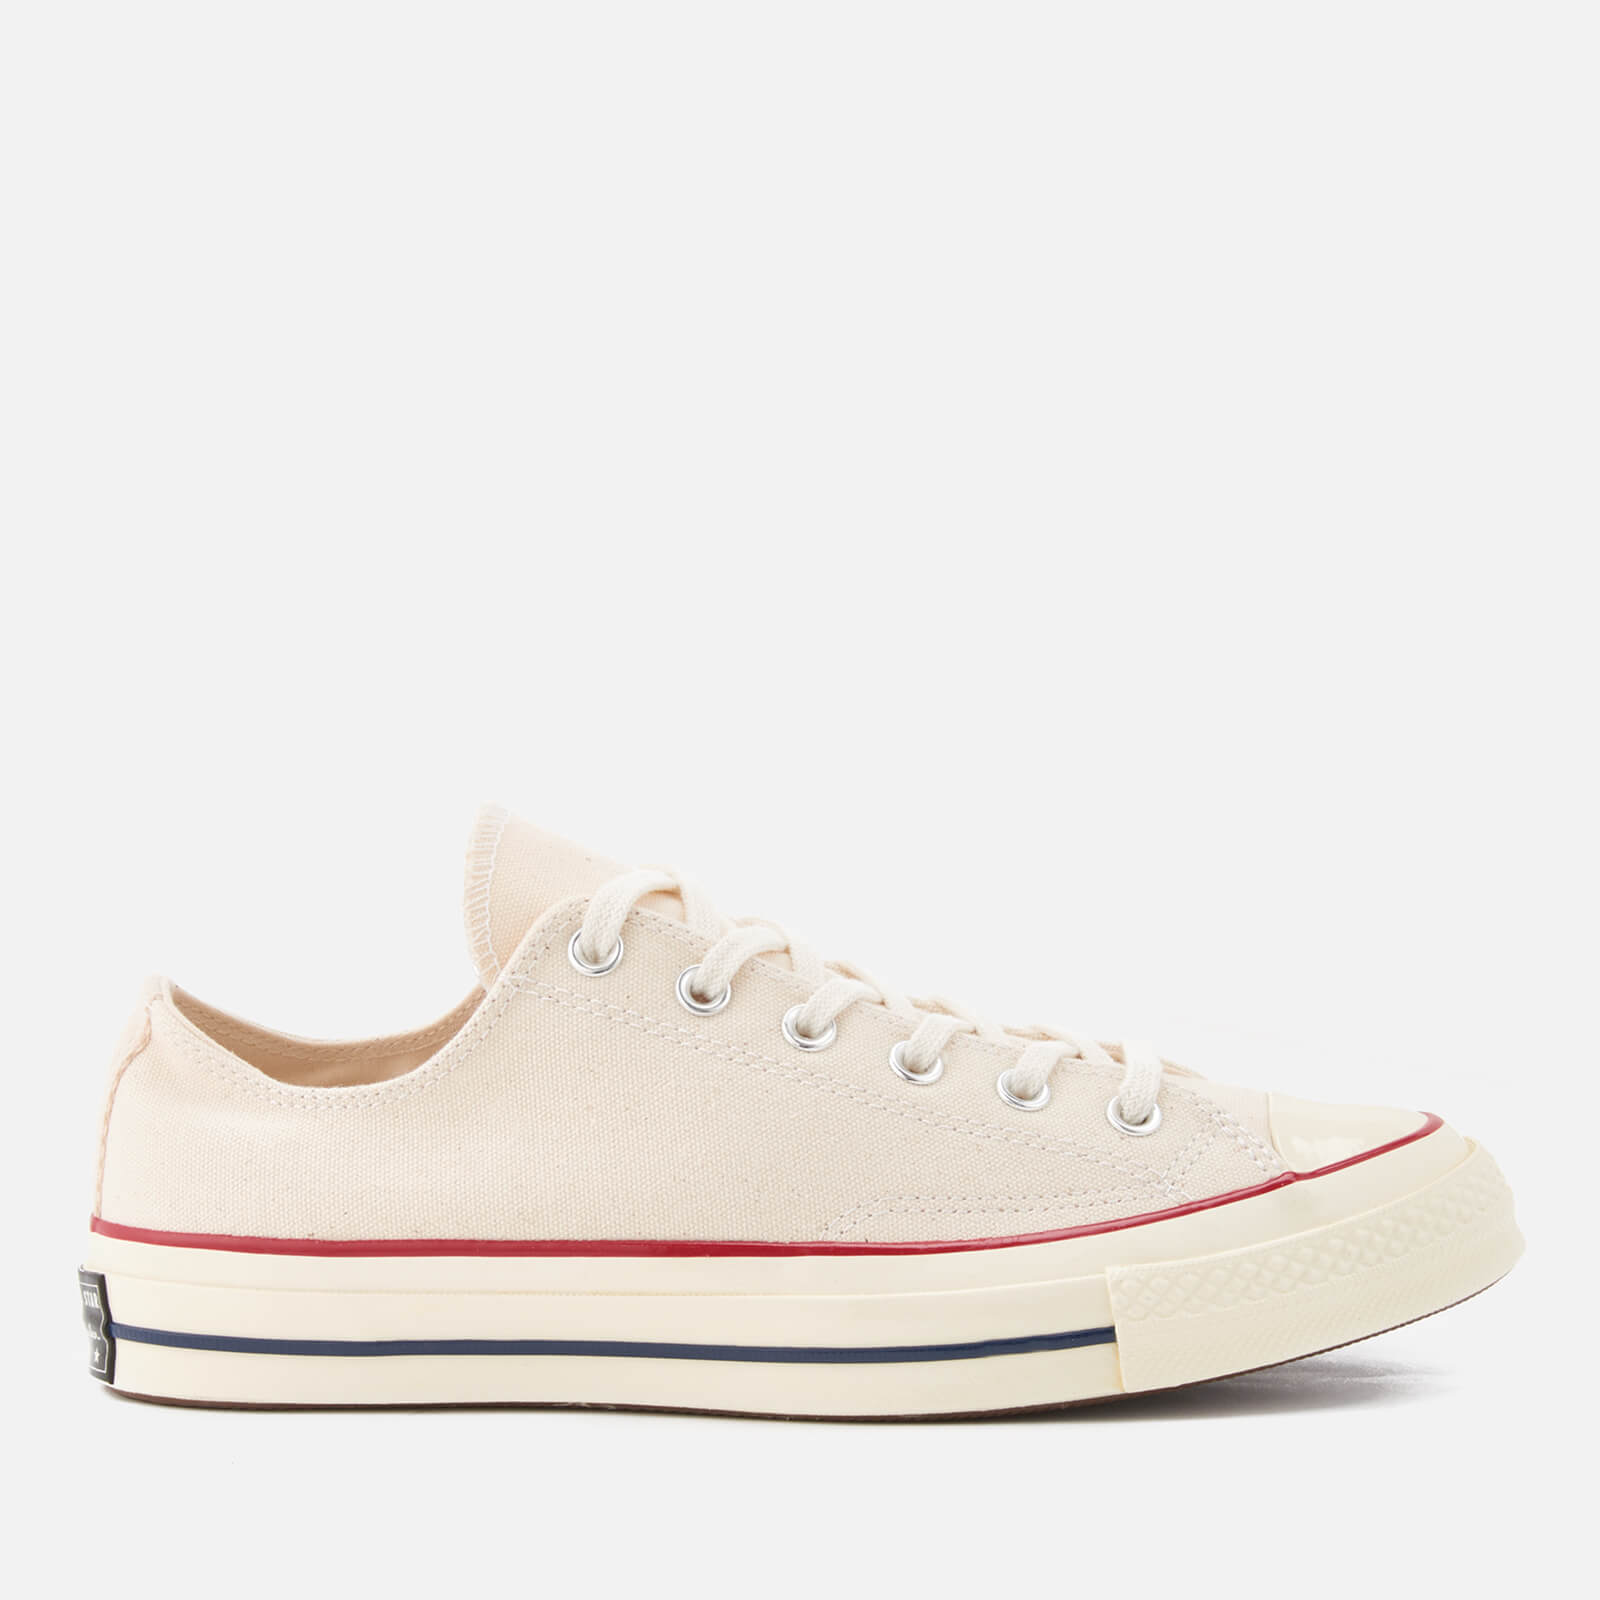 8f3dd269e711 Converse Chuck Taylor All Star  70 Ox Trainers - Parchment - Free UK  Delivery over £50